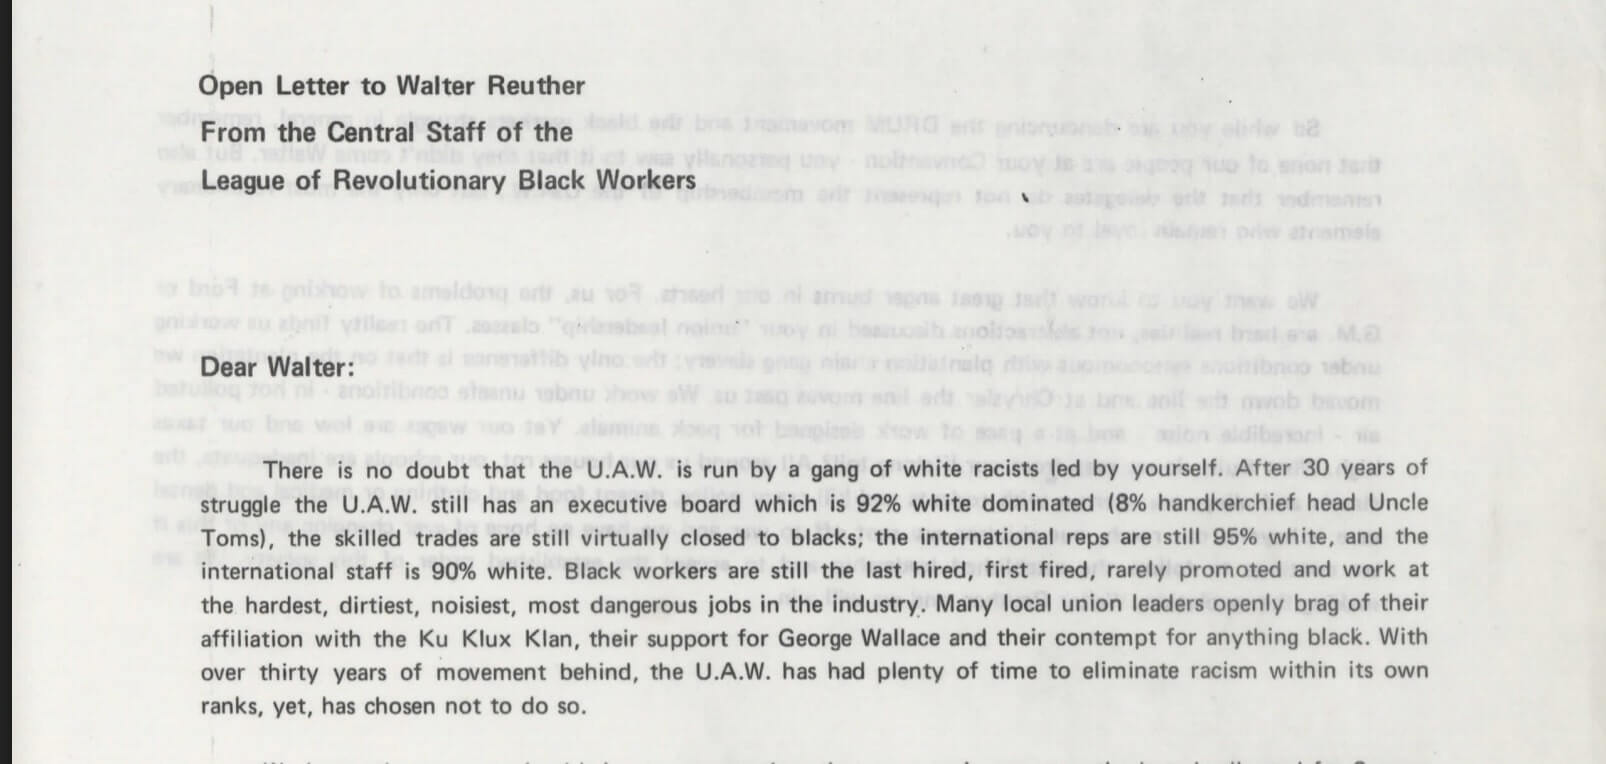 Open Letter to Walter Reuther from the League of Revolutionary Black Workers